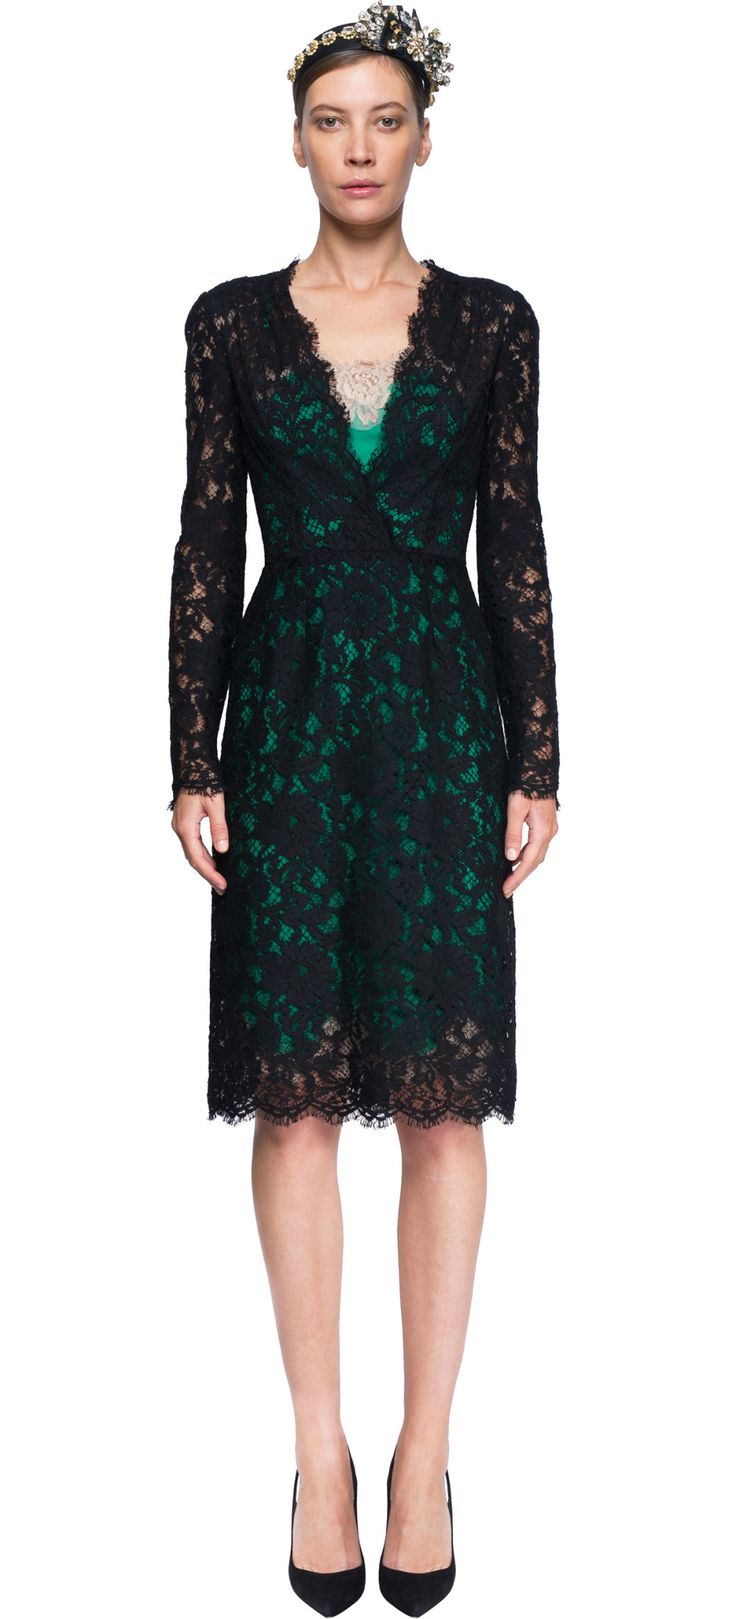 Synonymous with timeless and refined sensuality, the lace is one of the fil rouge that binds together all the Dolce & Gabbana collections. Designed to sit on the waist, this long floral lace cocktail-dress features scalloped edges and v-neck. To cover the sheer fabric, this dress comes with with a stretch green camisole embroidered with a floral element.